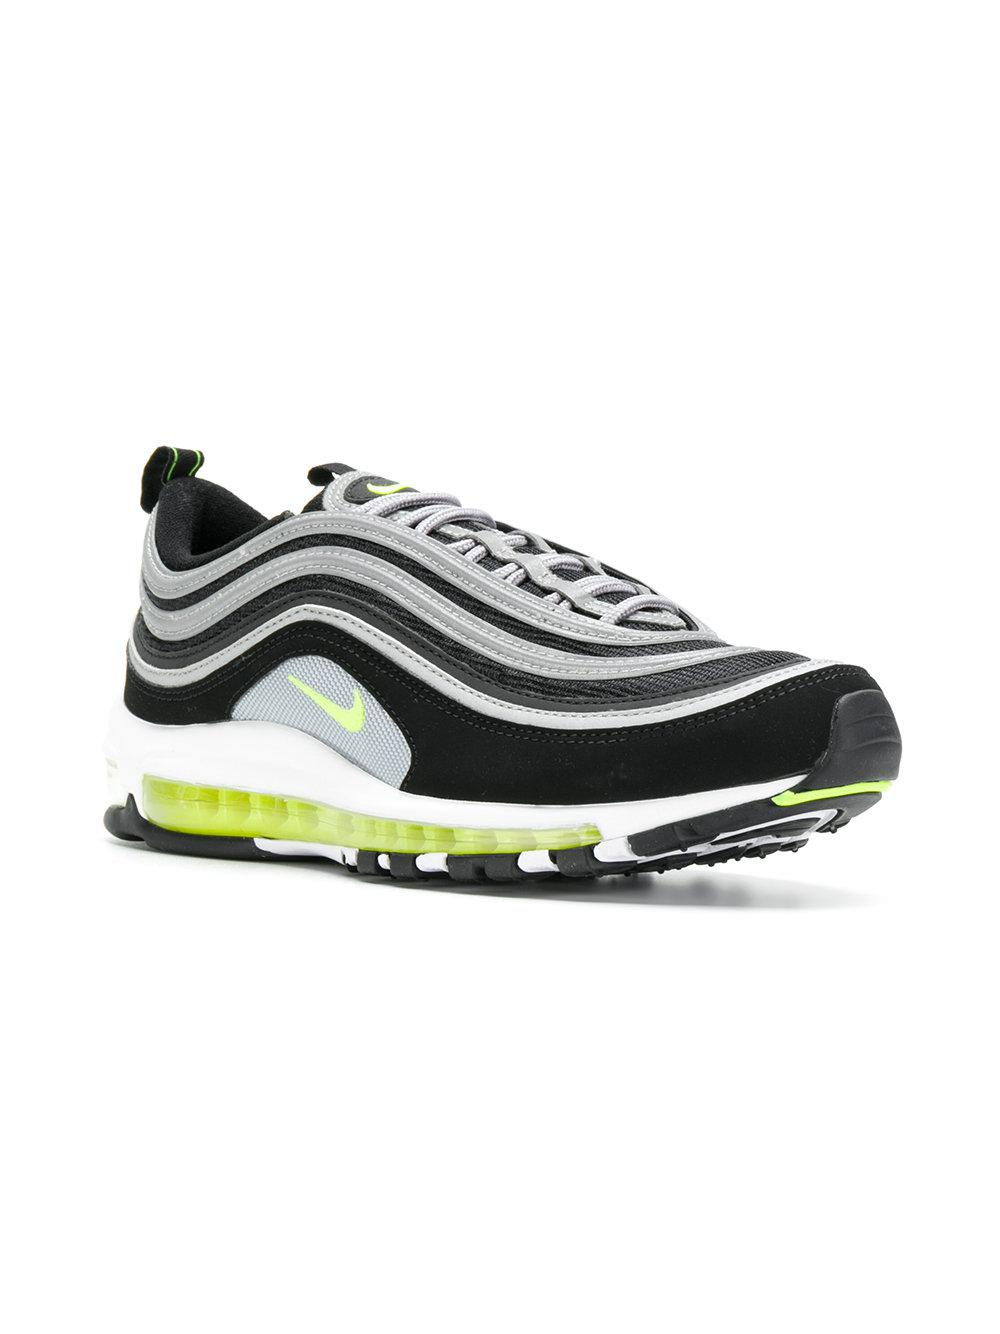 cheap for discount 4ce5d b2947 Lyst - Nike Air Max 97 Og Japan Sneakers in Black for Men